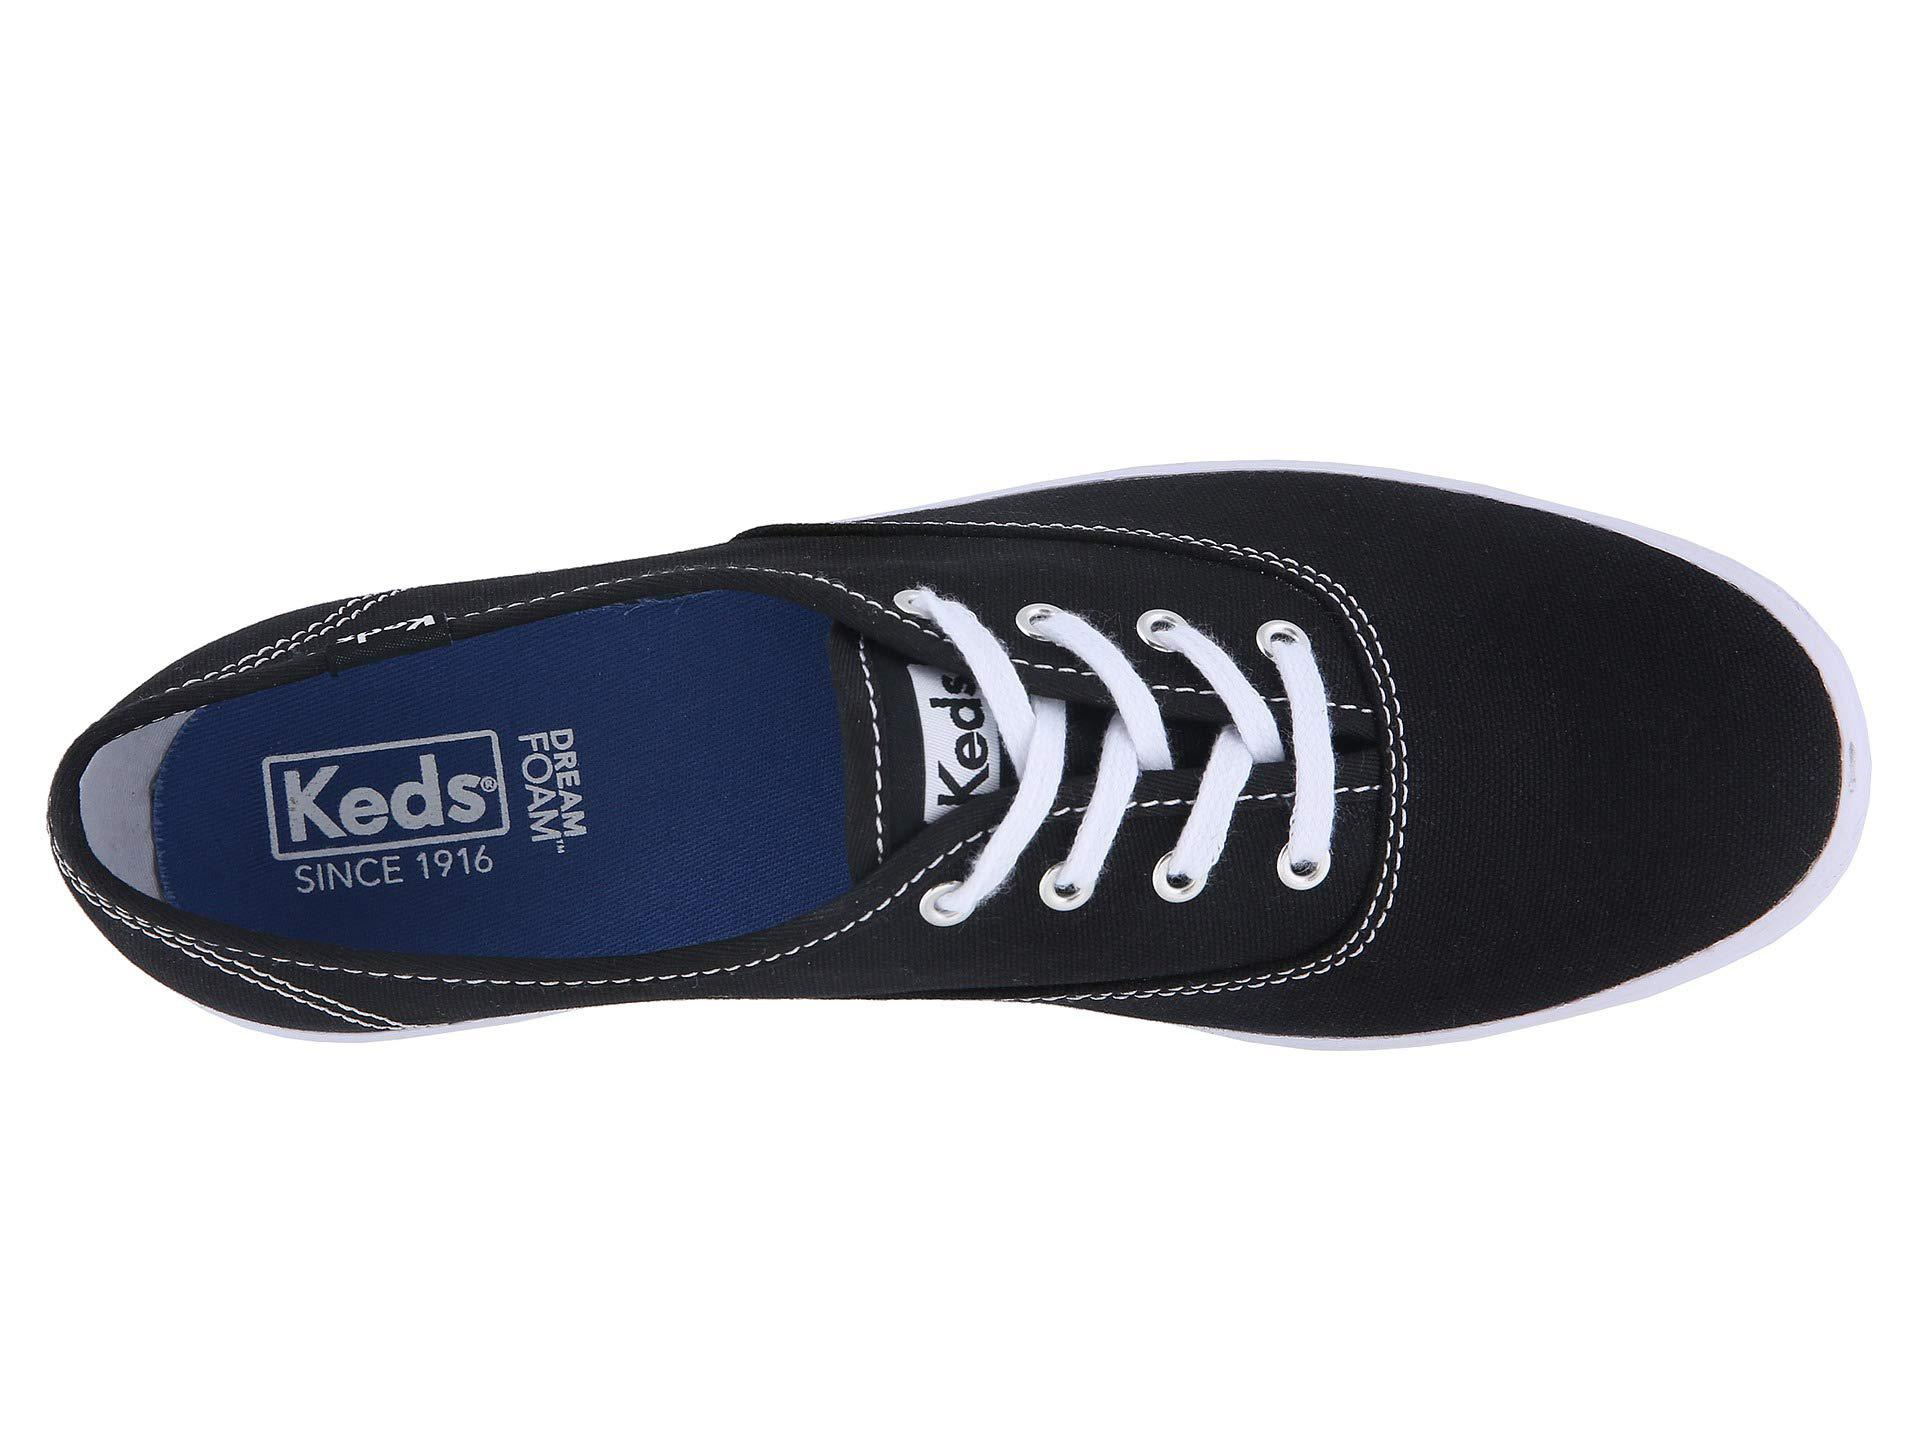 5ecd9648b7eb7 Keds - Black Champion Core Trainers - Lyst. View fullscreen